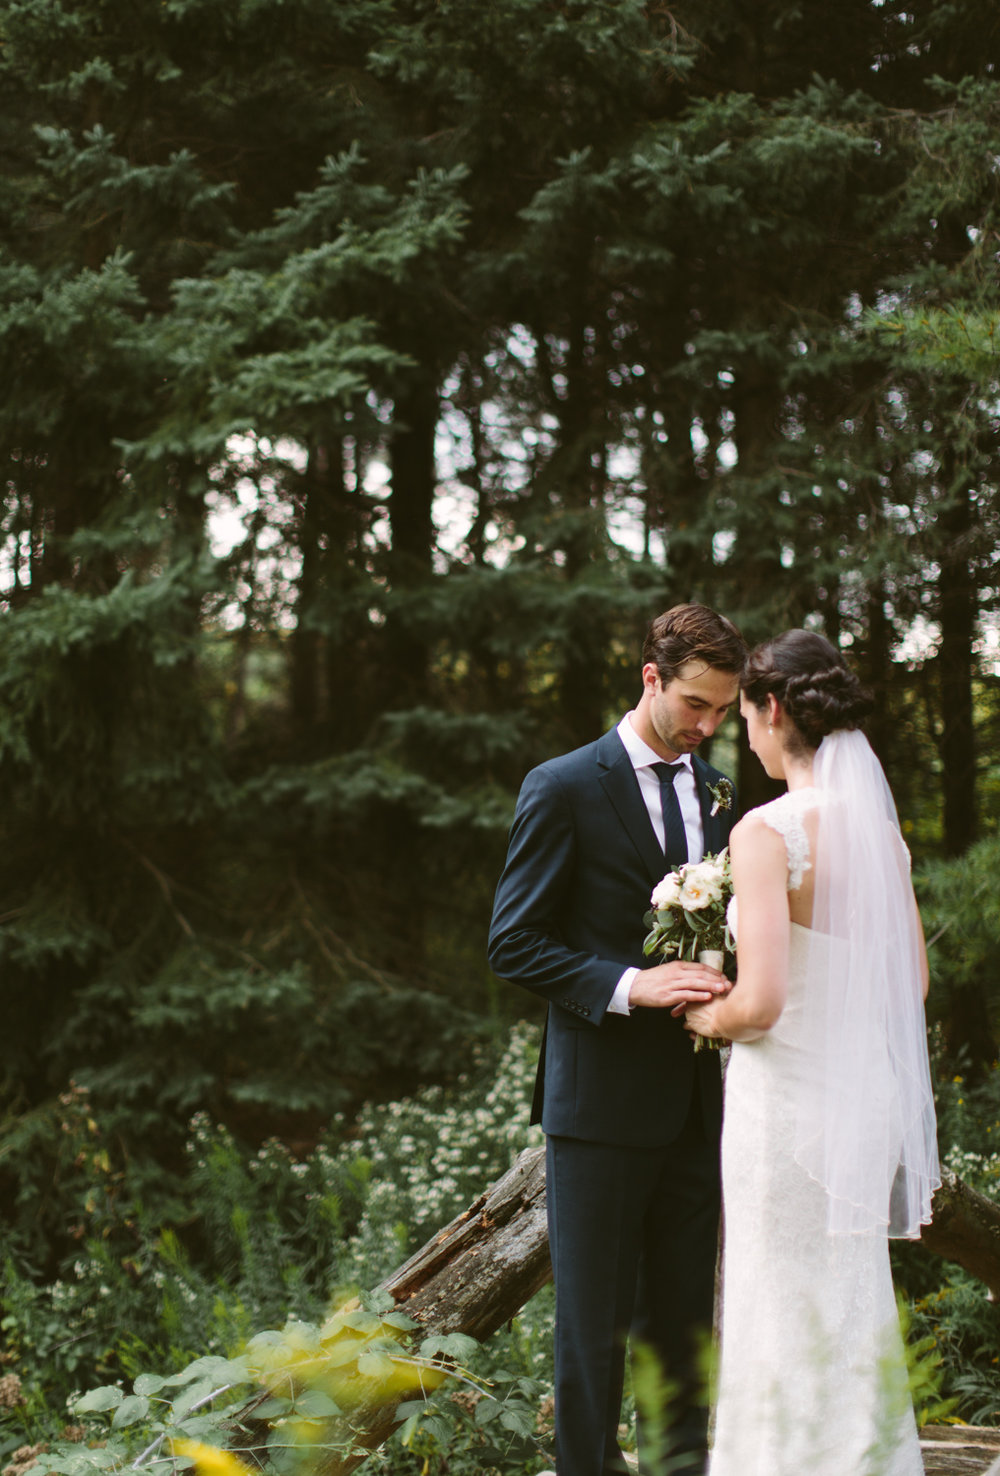 Couple sharing their vows in a forest